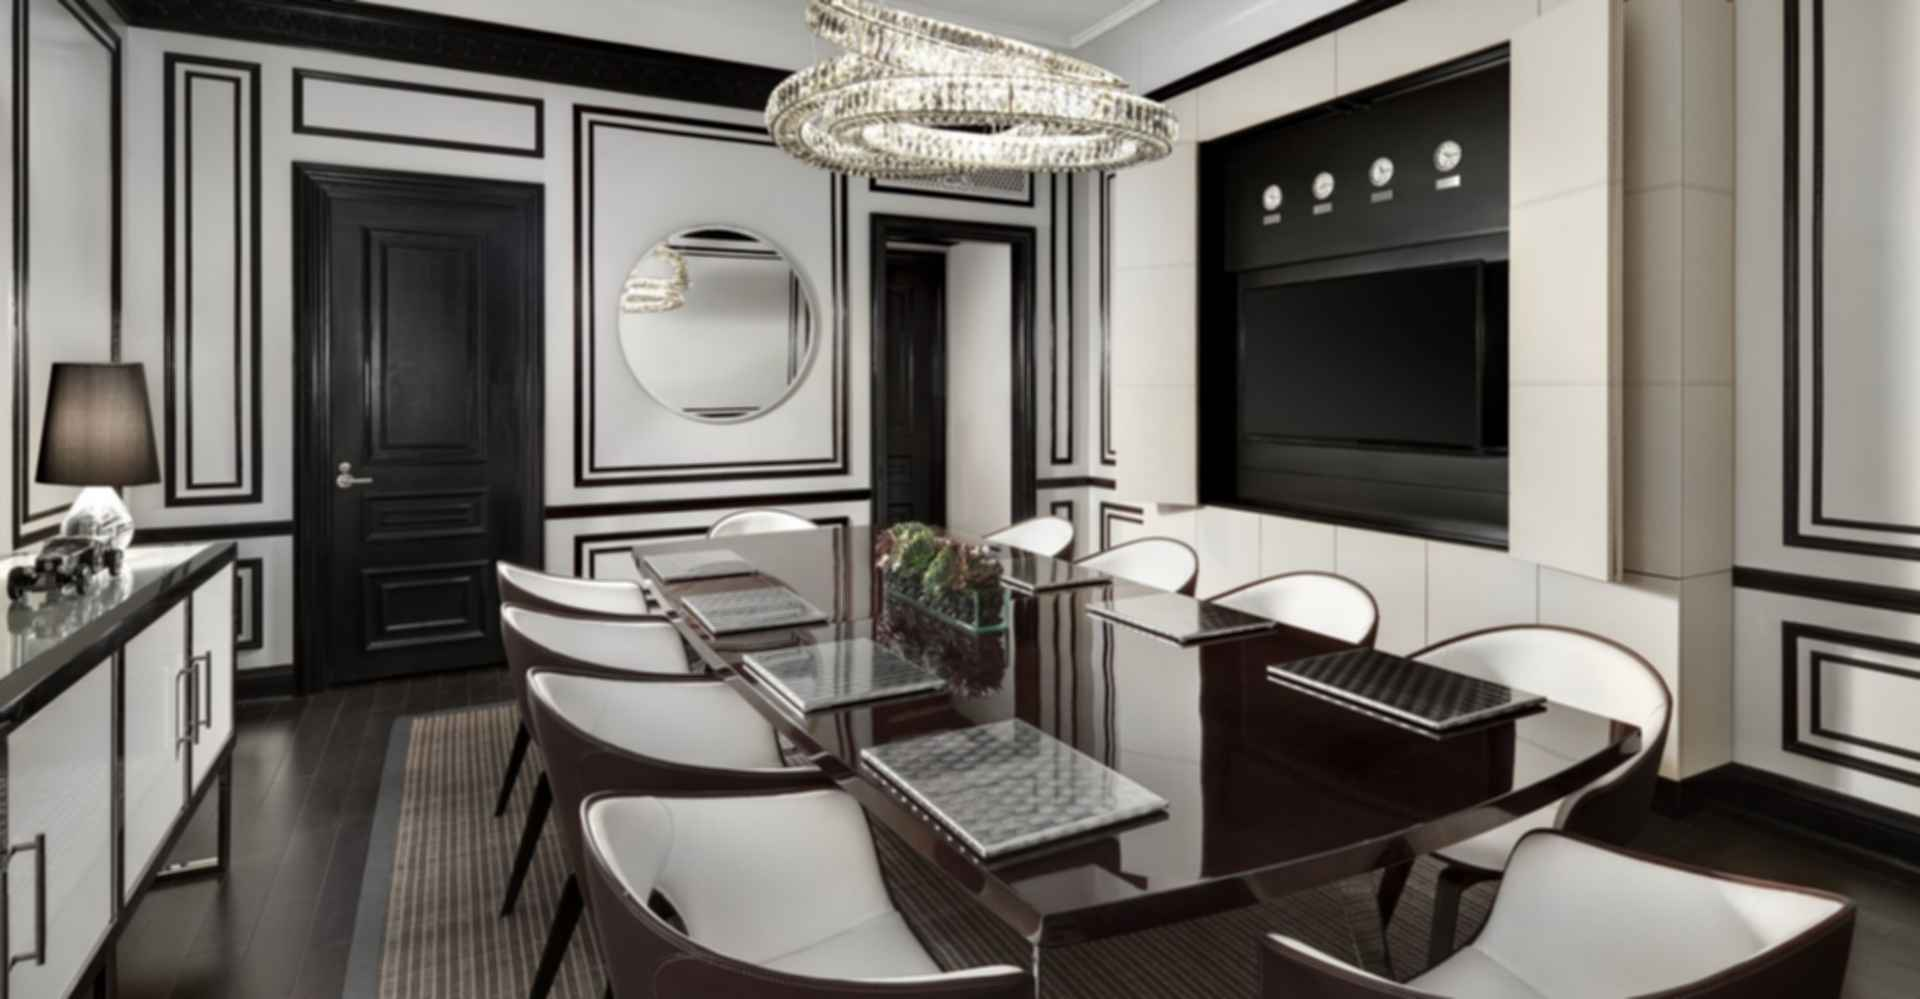 St Regis New York Bentley Suite - Meeting Room